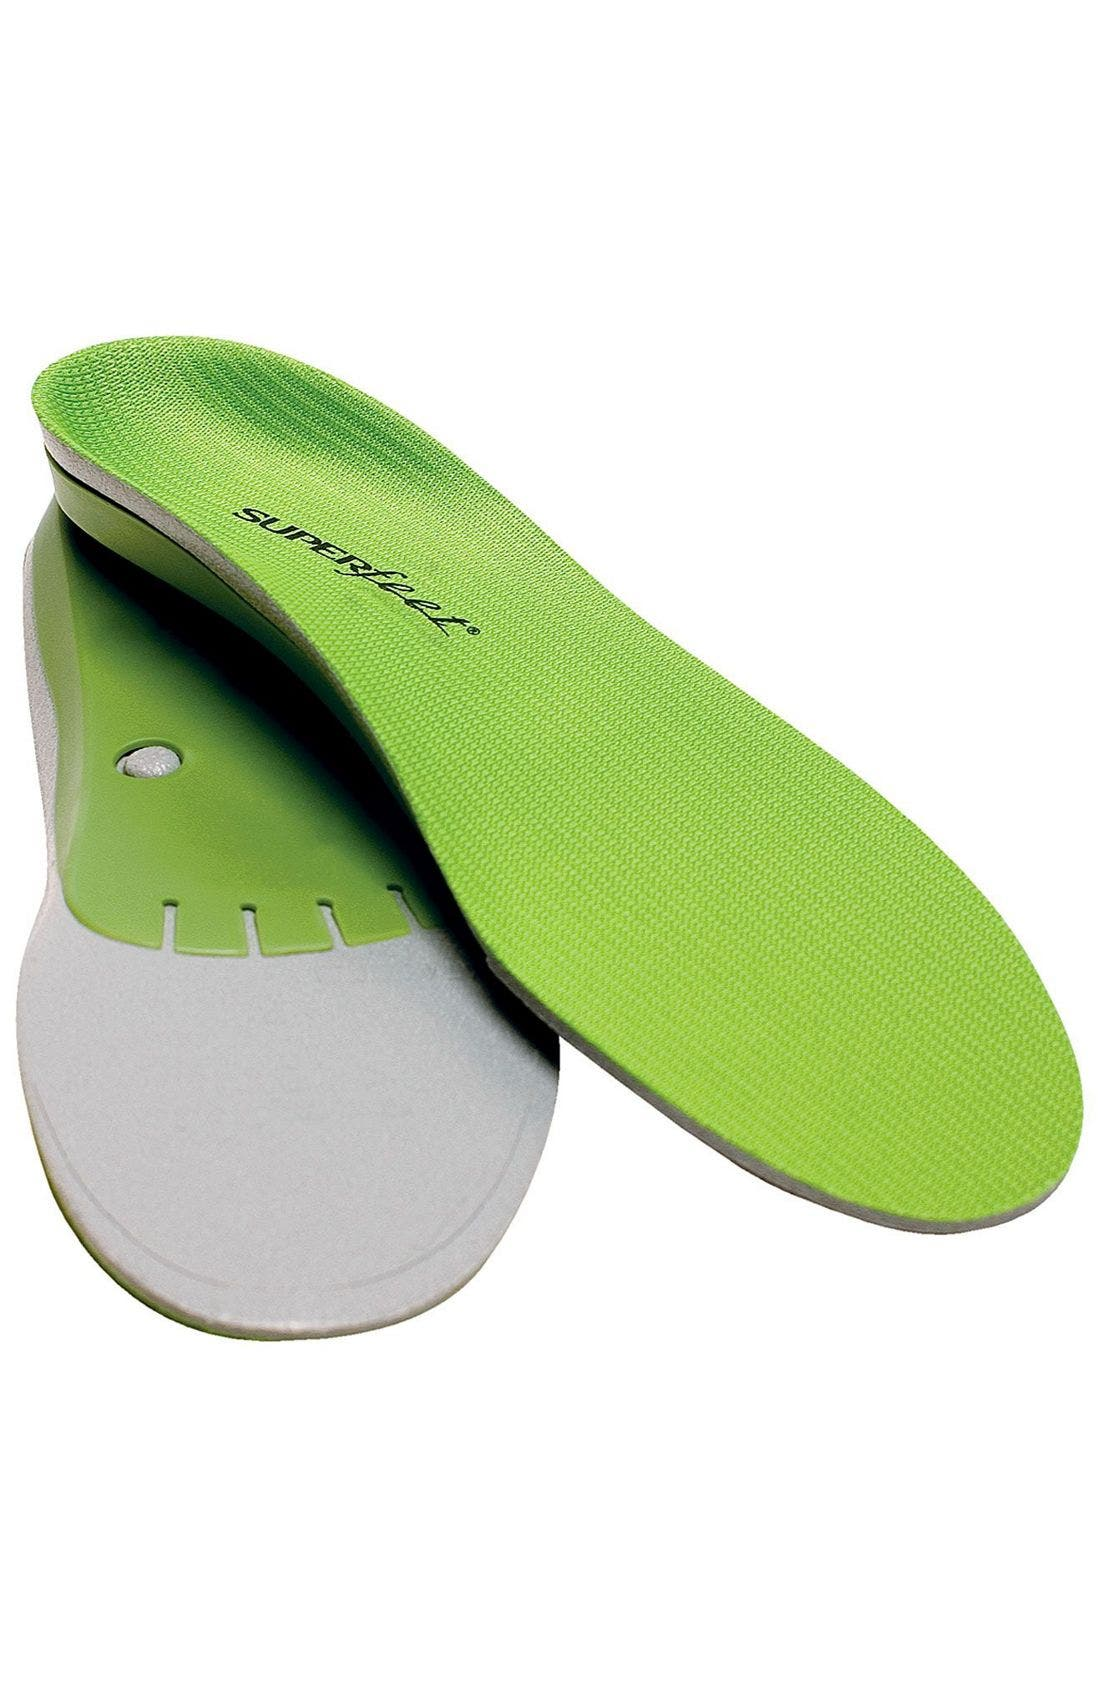 Alternate Image 1 Selected - Superfeet 'Performance Green' Insoles (Women)